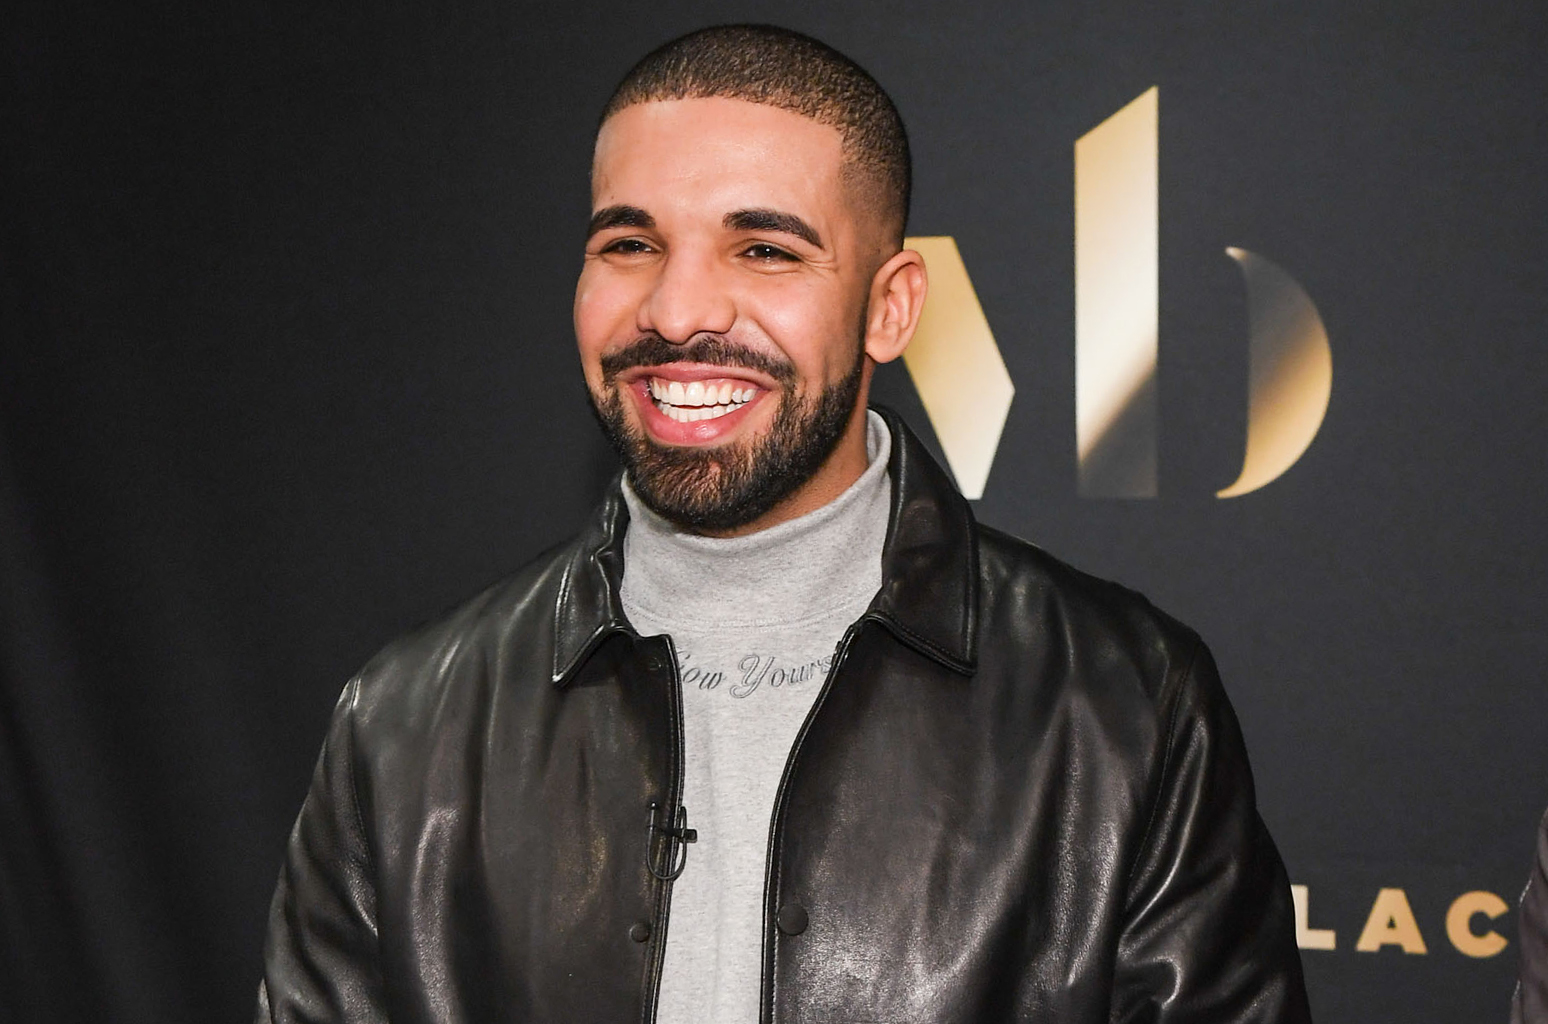 Drake Visits Miami High School to Film Music Video